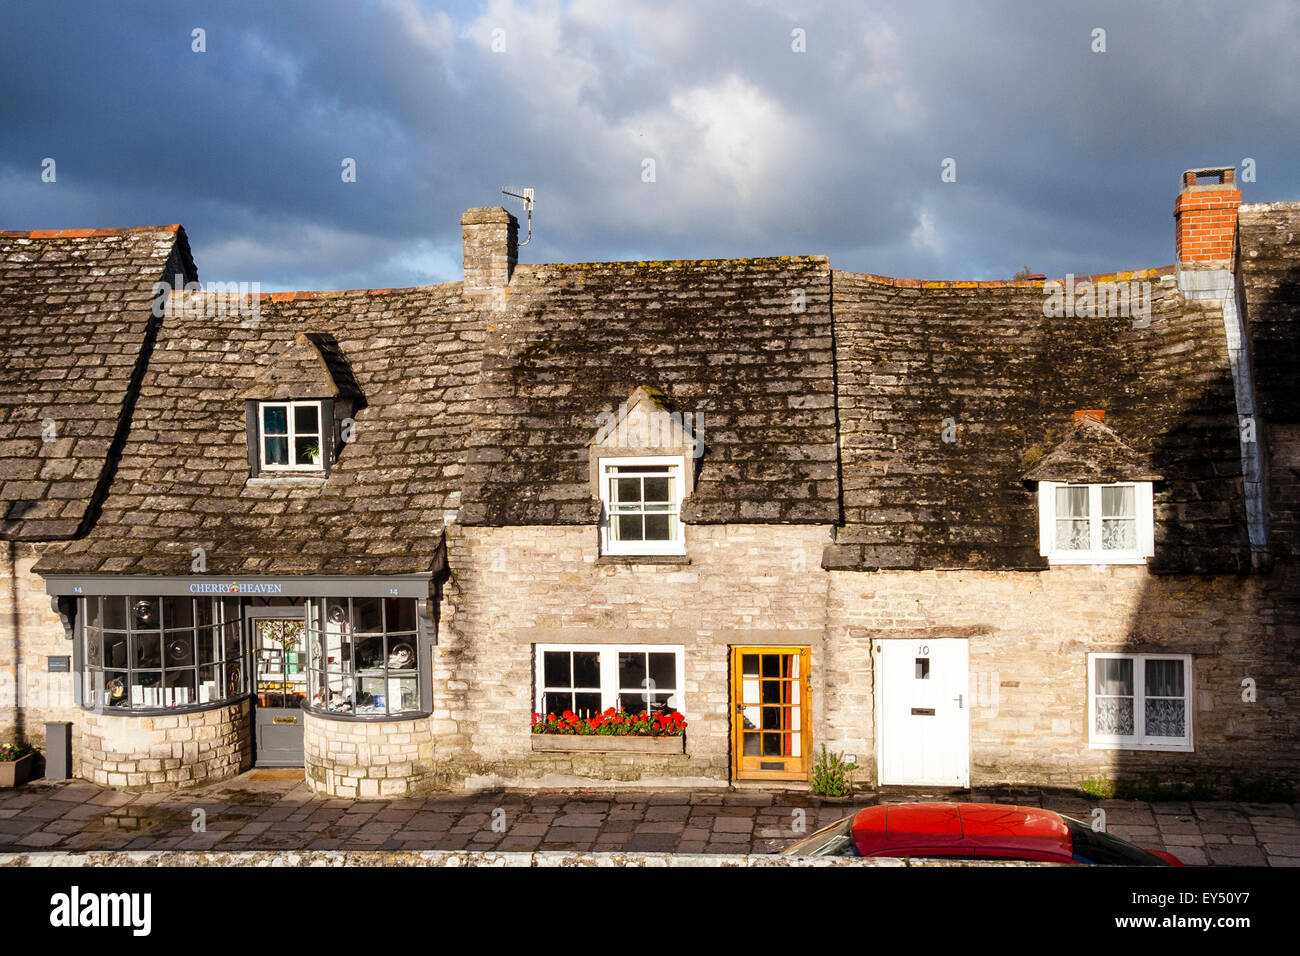 Typical old world English village scene, row of cottages with uneven roofs, Corfe, Dorset, dark skies, viewed head - Stock Image